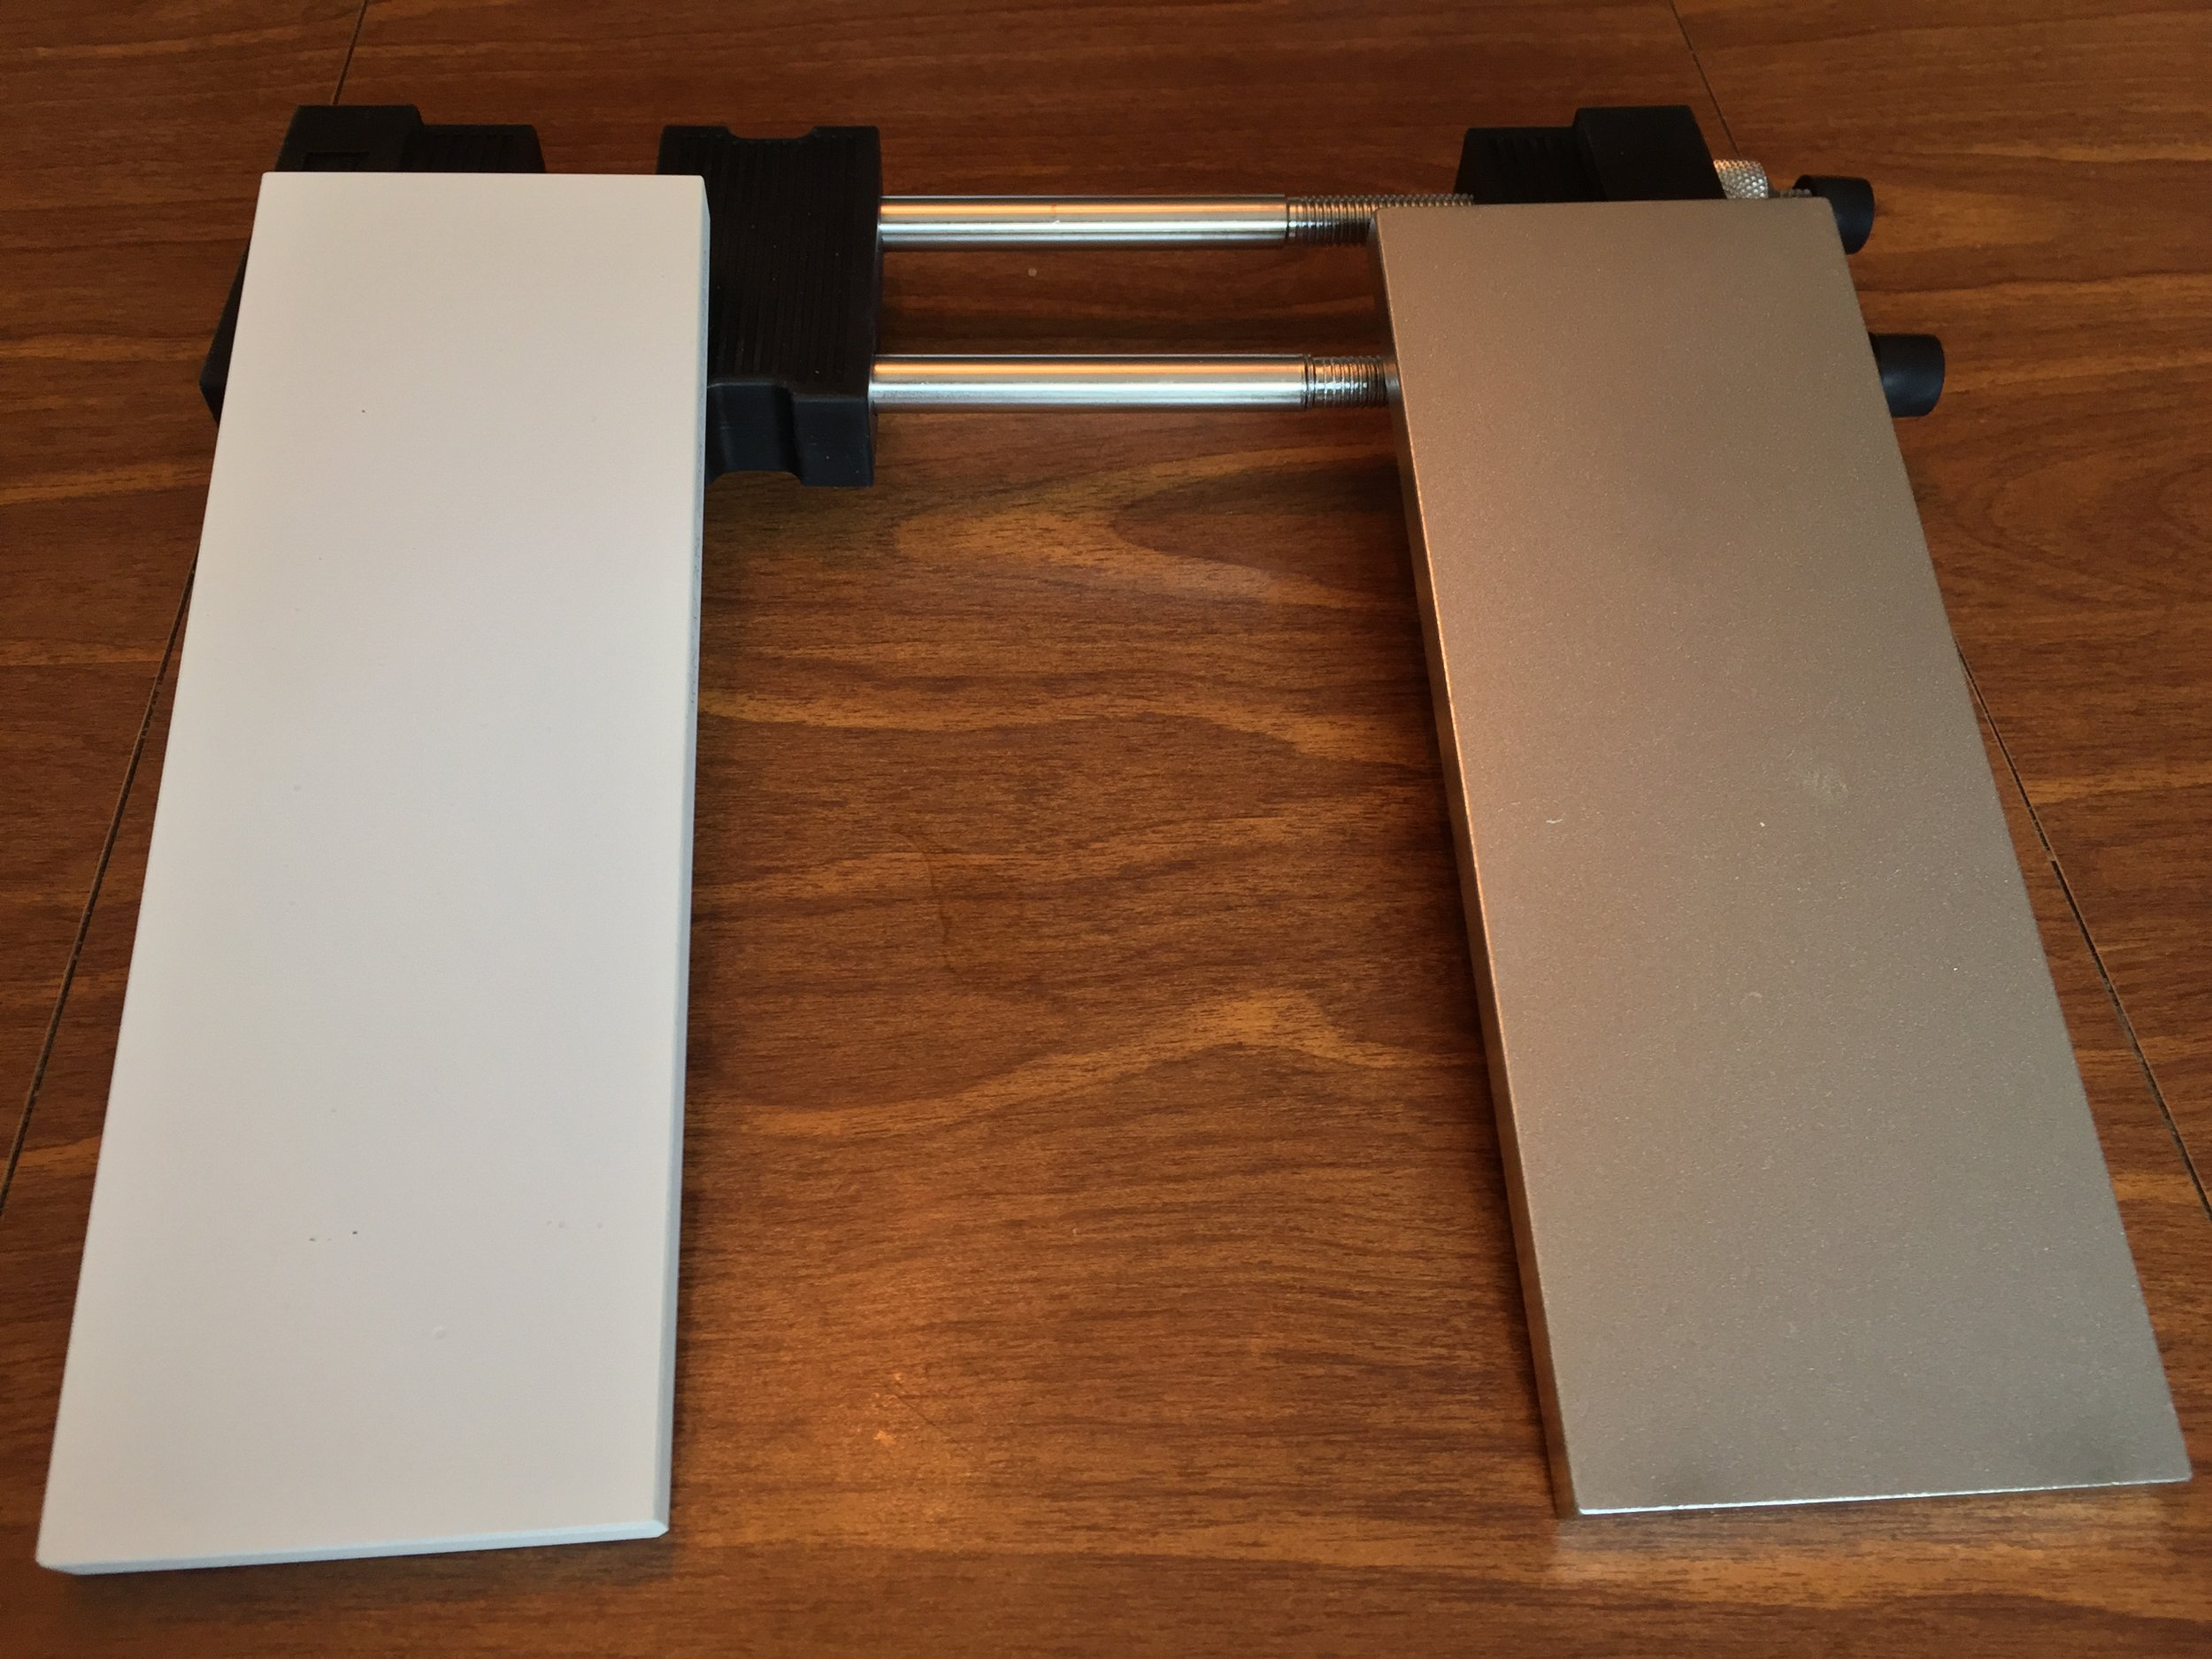 From left to right: The Naniwa 12k grit sharpening stone, the Naniwa Sharpening Stone Holder, the DMT D8C 325 Diamond Lapping plate.